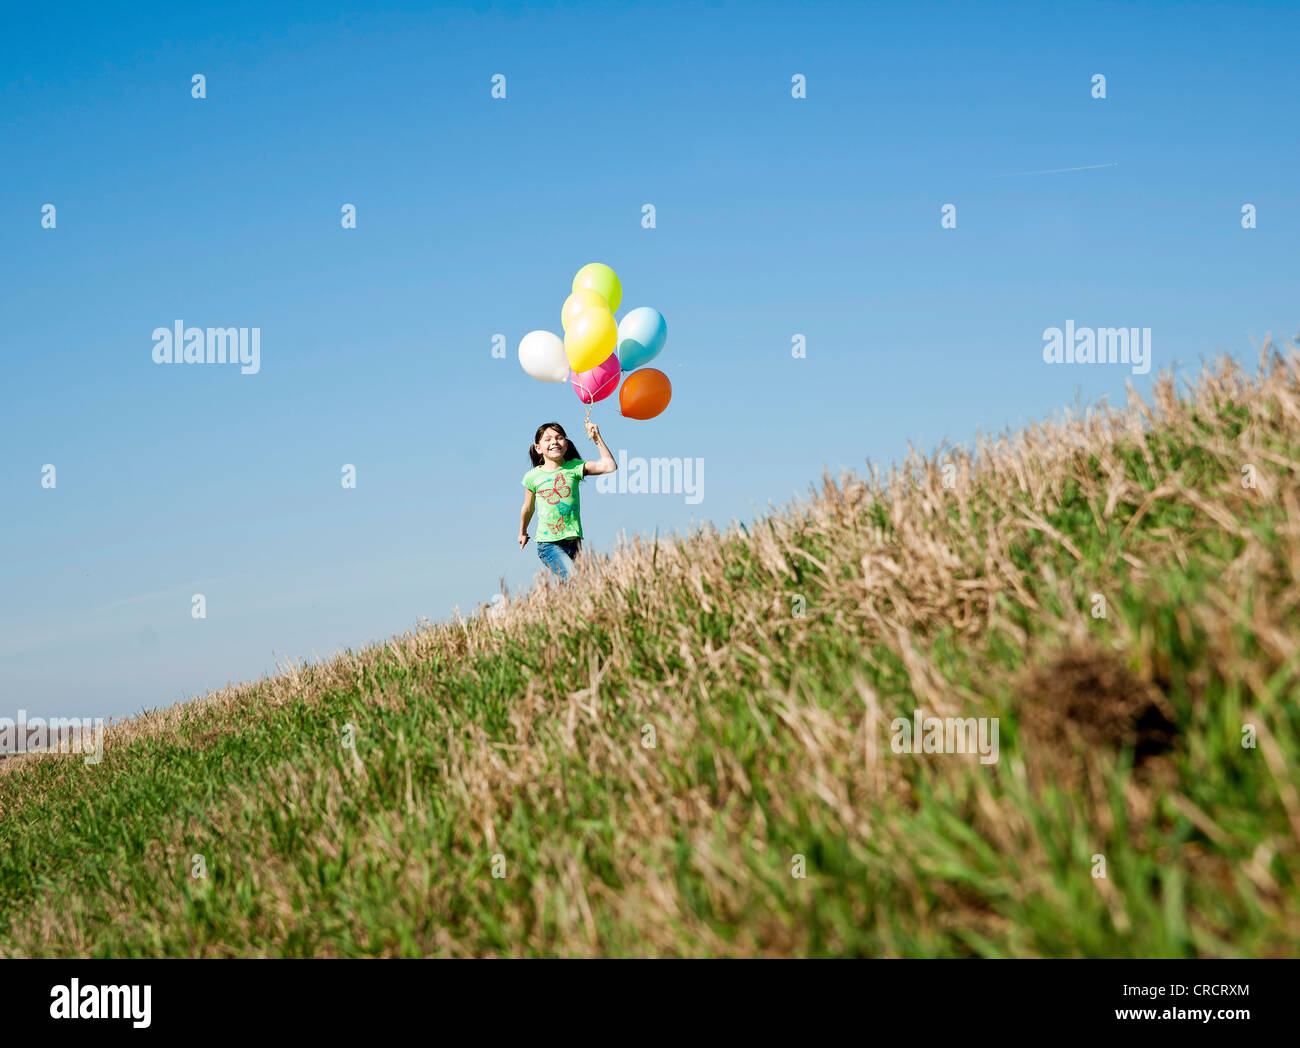 Girl running in meadow with balloons - Stock Image